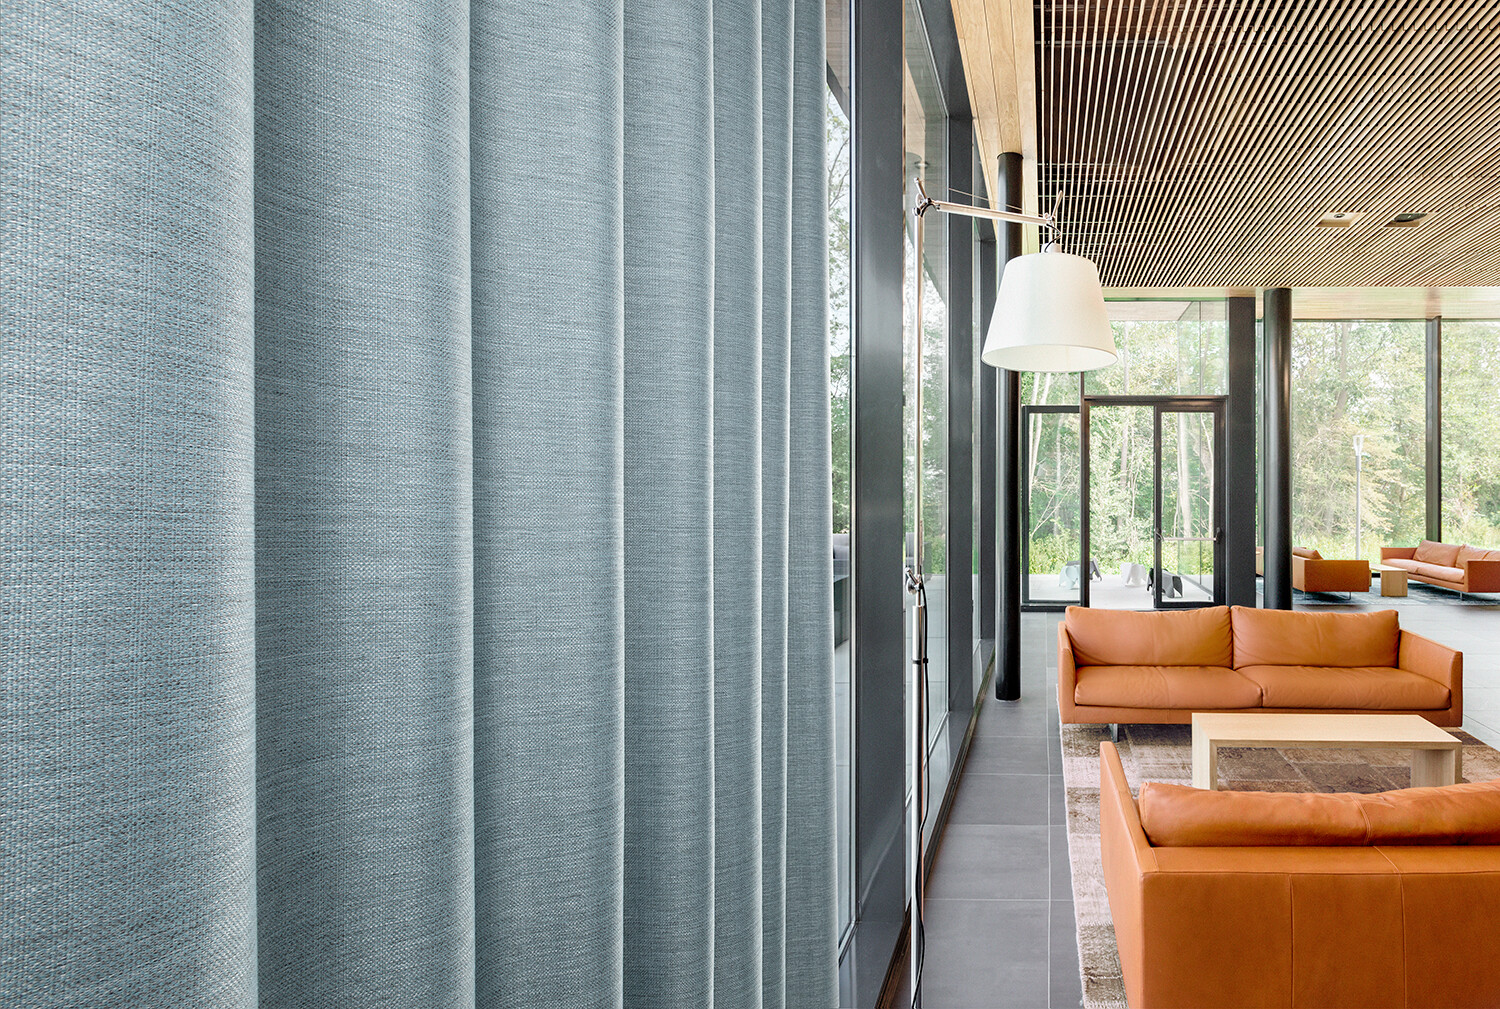 Curtain fabrics inspired by nature